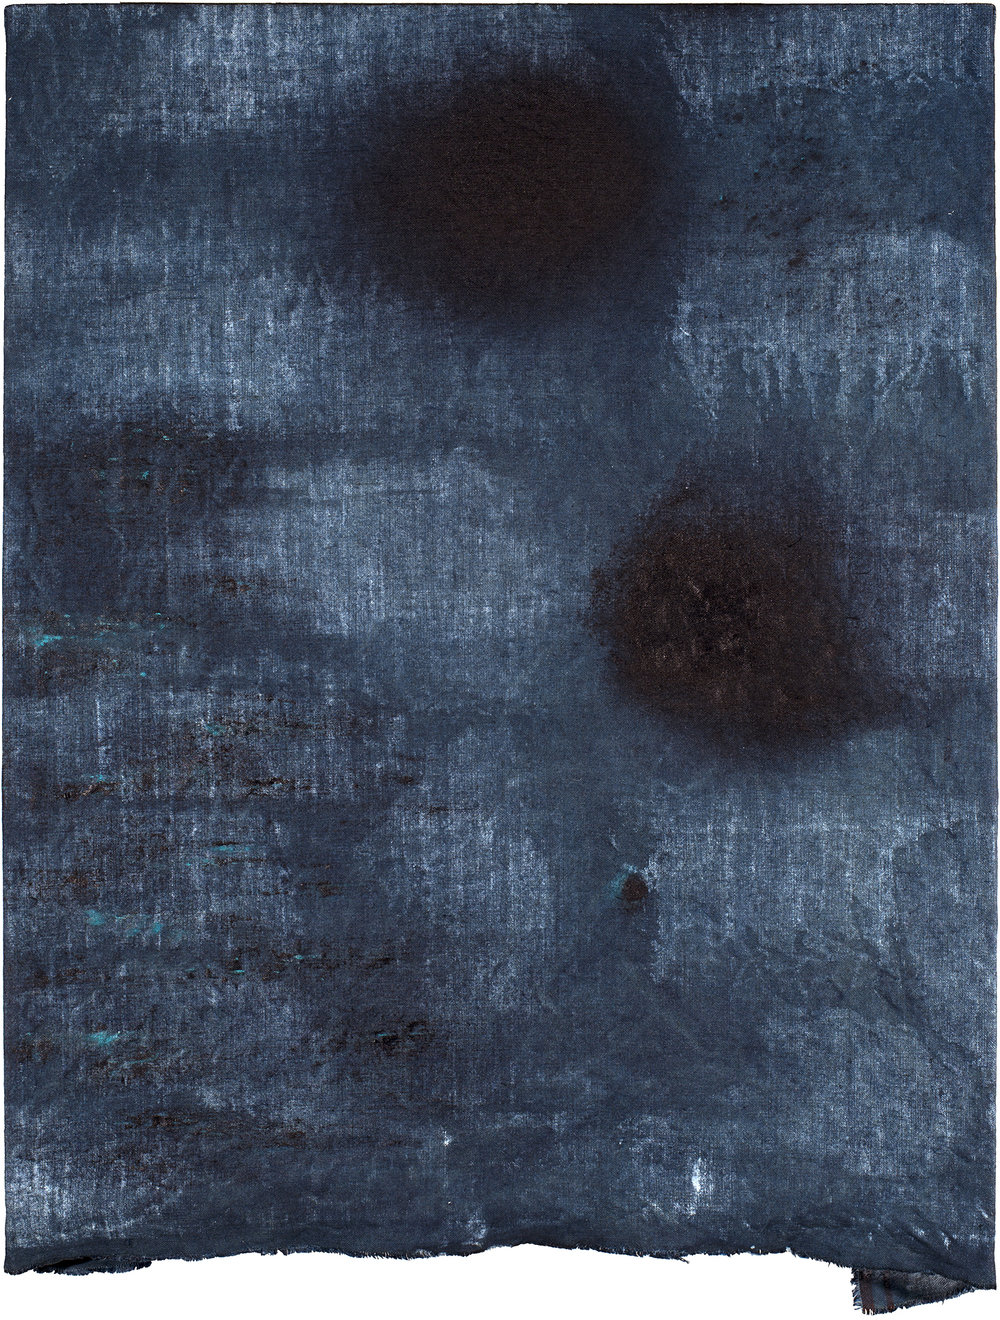 Untitled (Indigo, Raw Edge) , 2017 Indigo pigment and acrylic on indigo dyed linen 22 x 18 inches